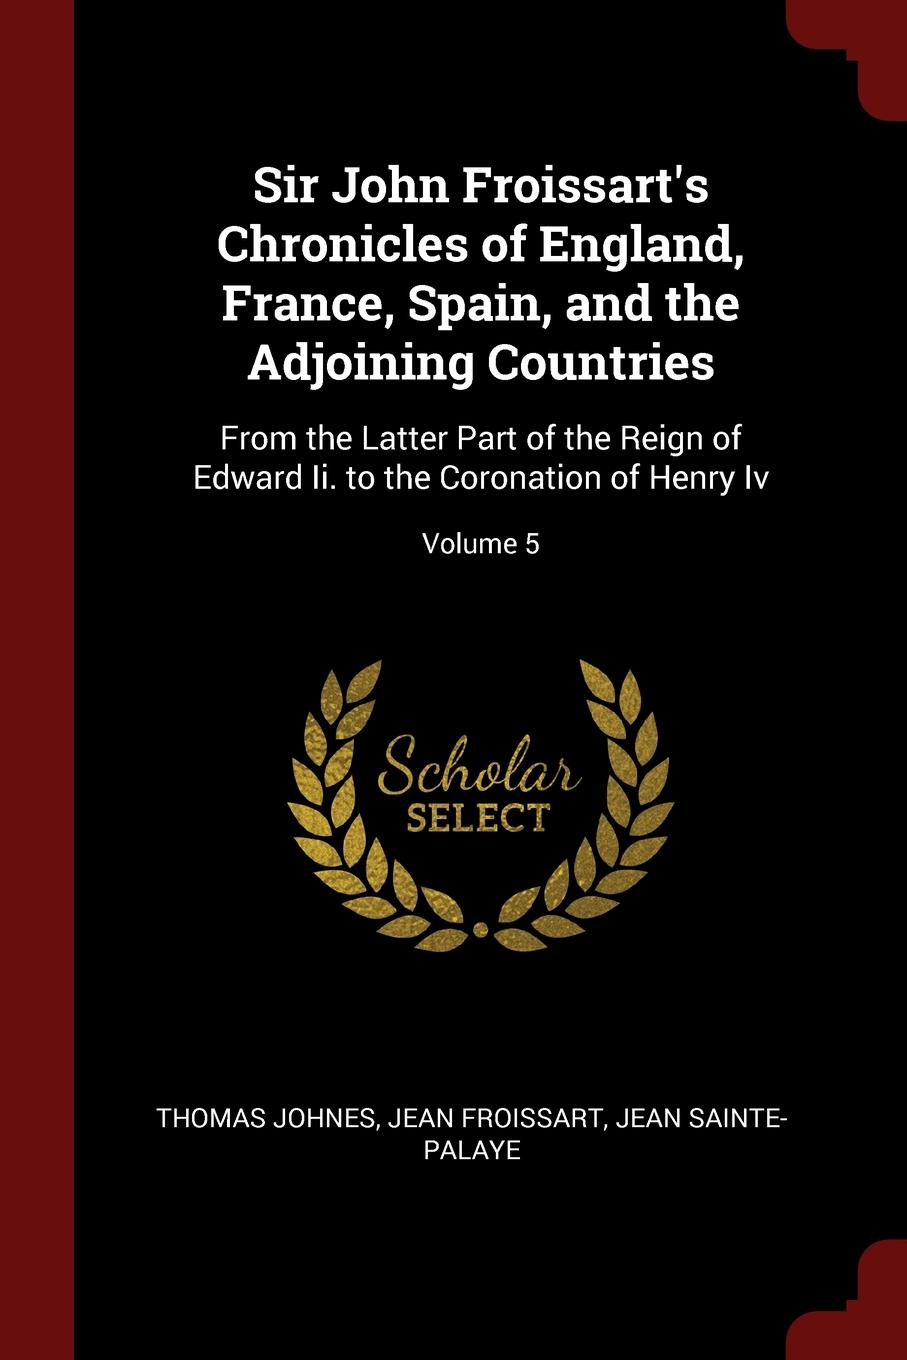 Sir John Froissart.s Chronicles of England, France, Spain, and the Adjoining Countries. From the Latter Part of the Reign of Edward Ii. to the Coronation of Henry Iv; Volume 5